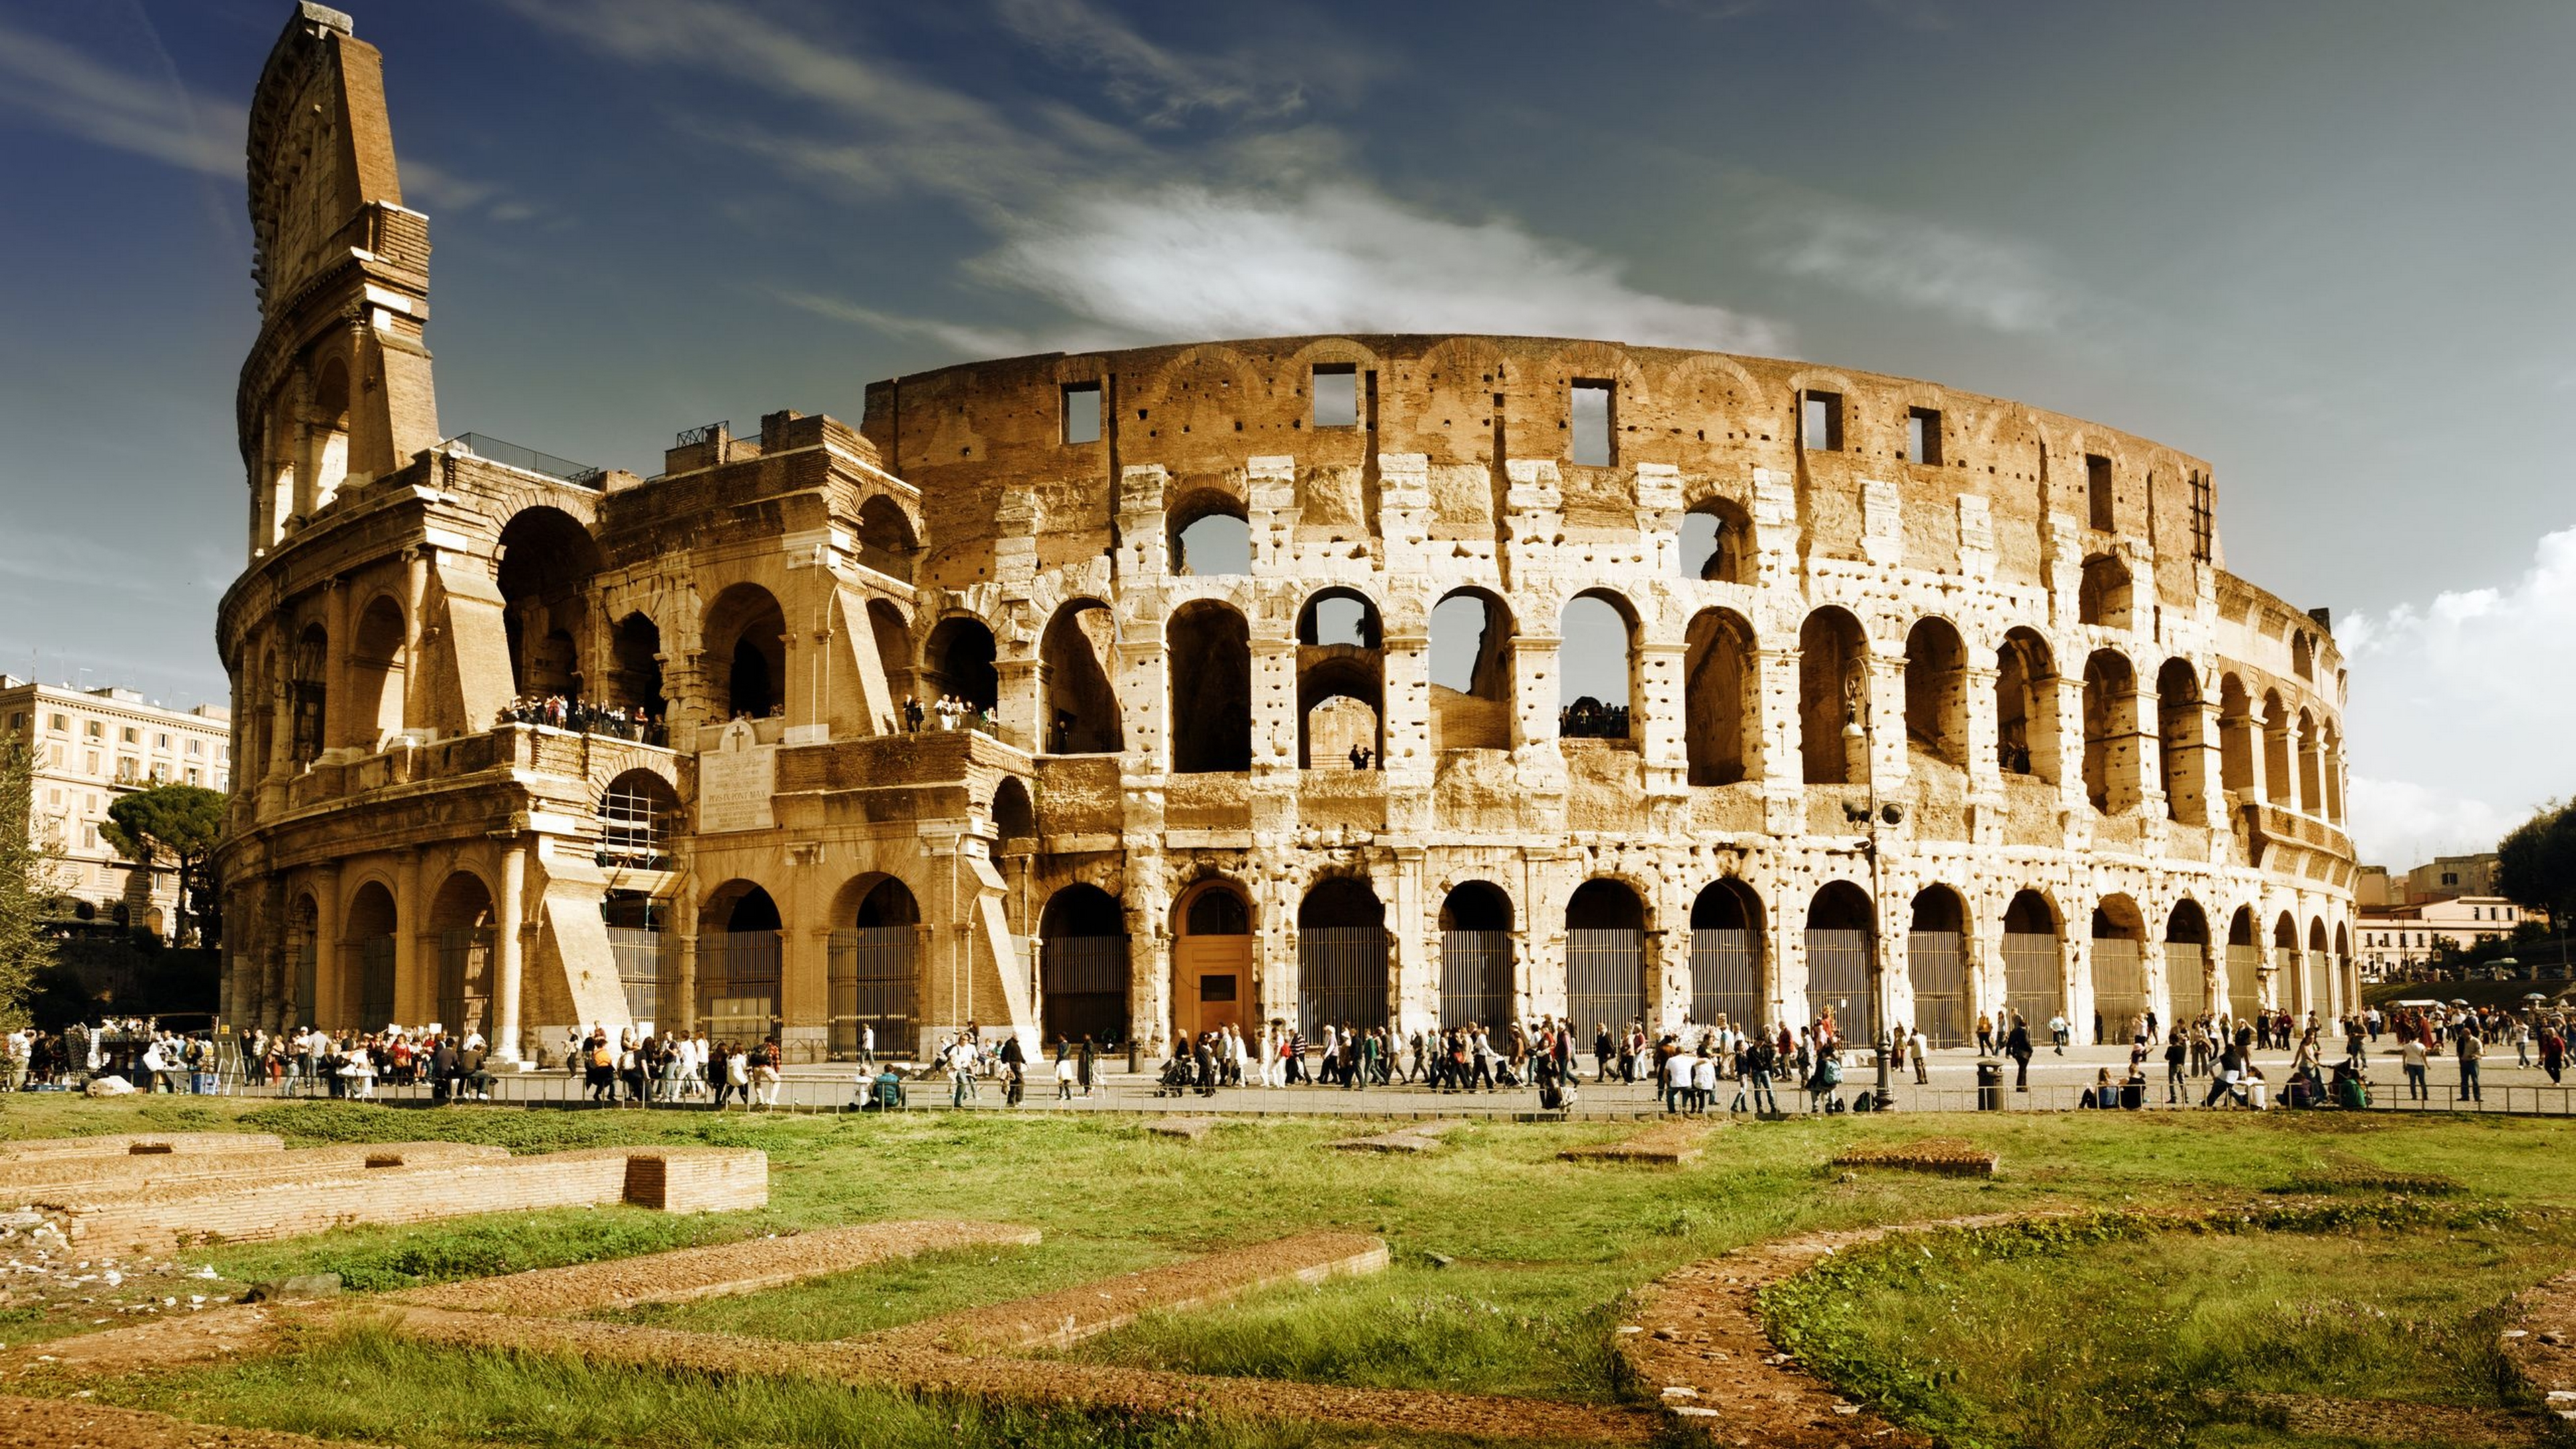 colosseum wallpaper 4k background